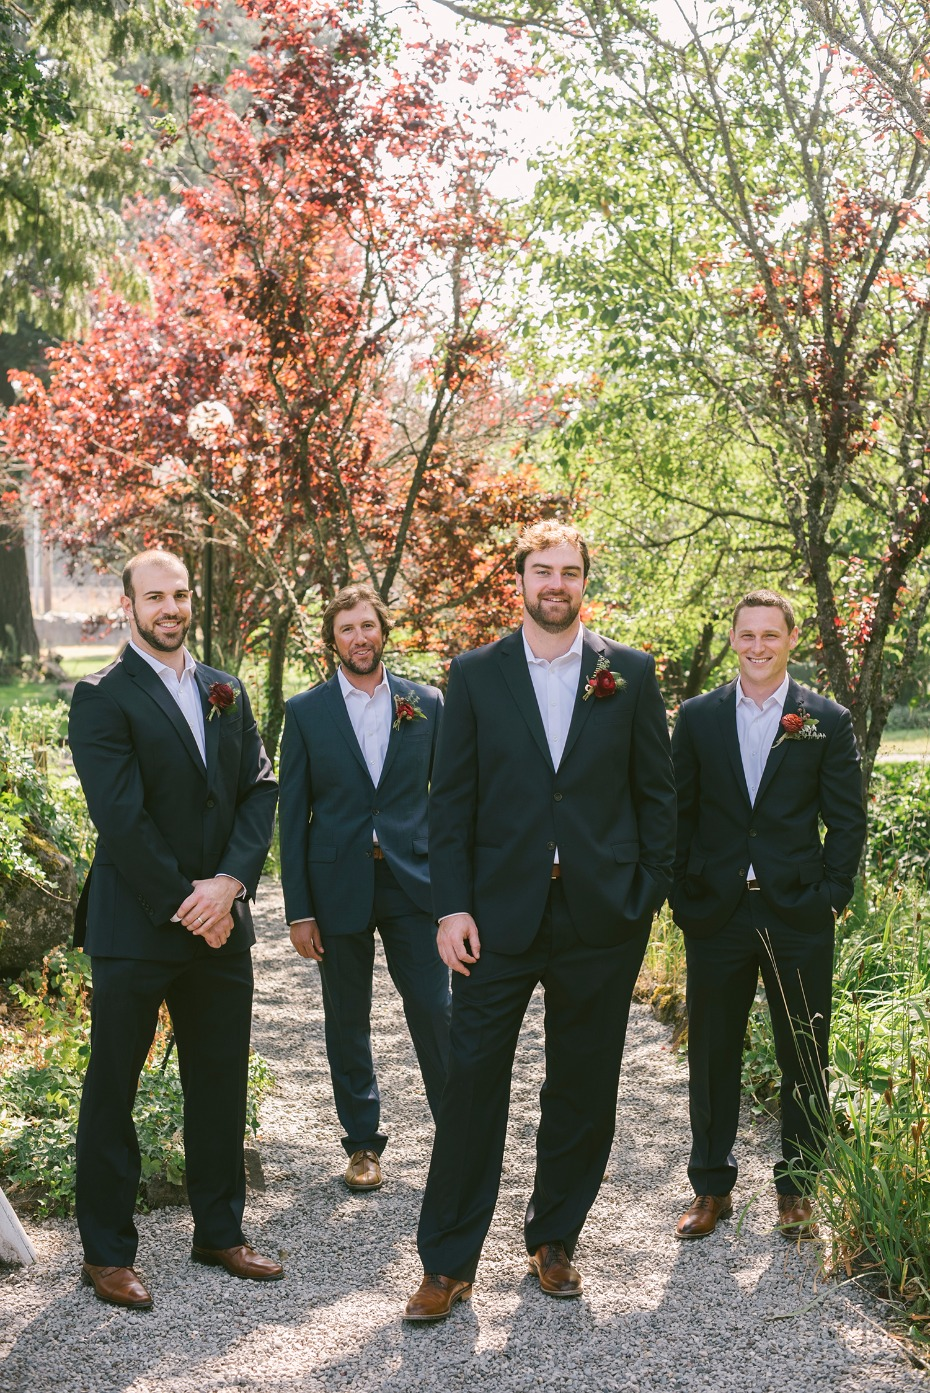 Tie-less groomsmen look